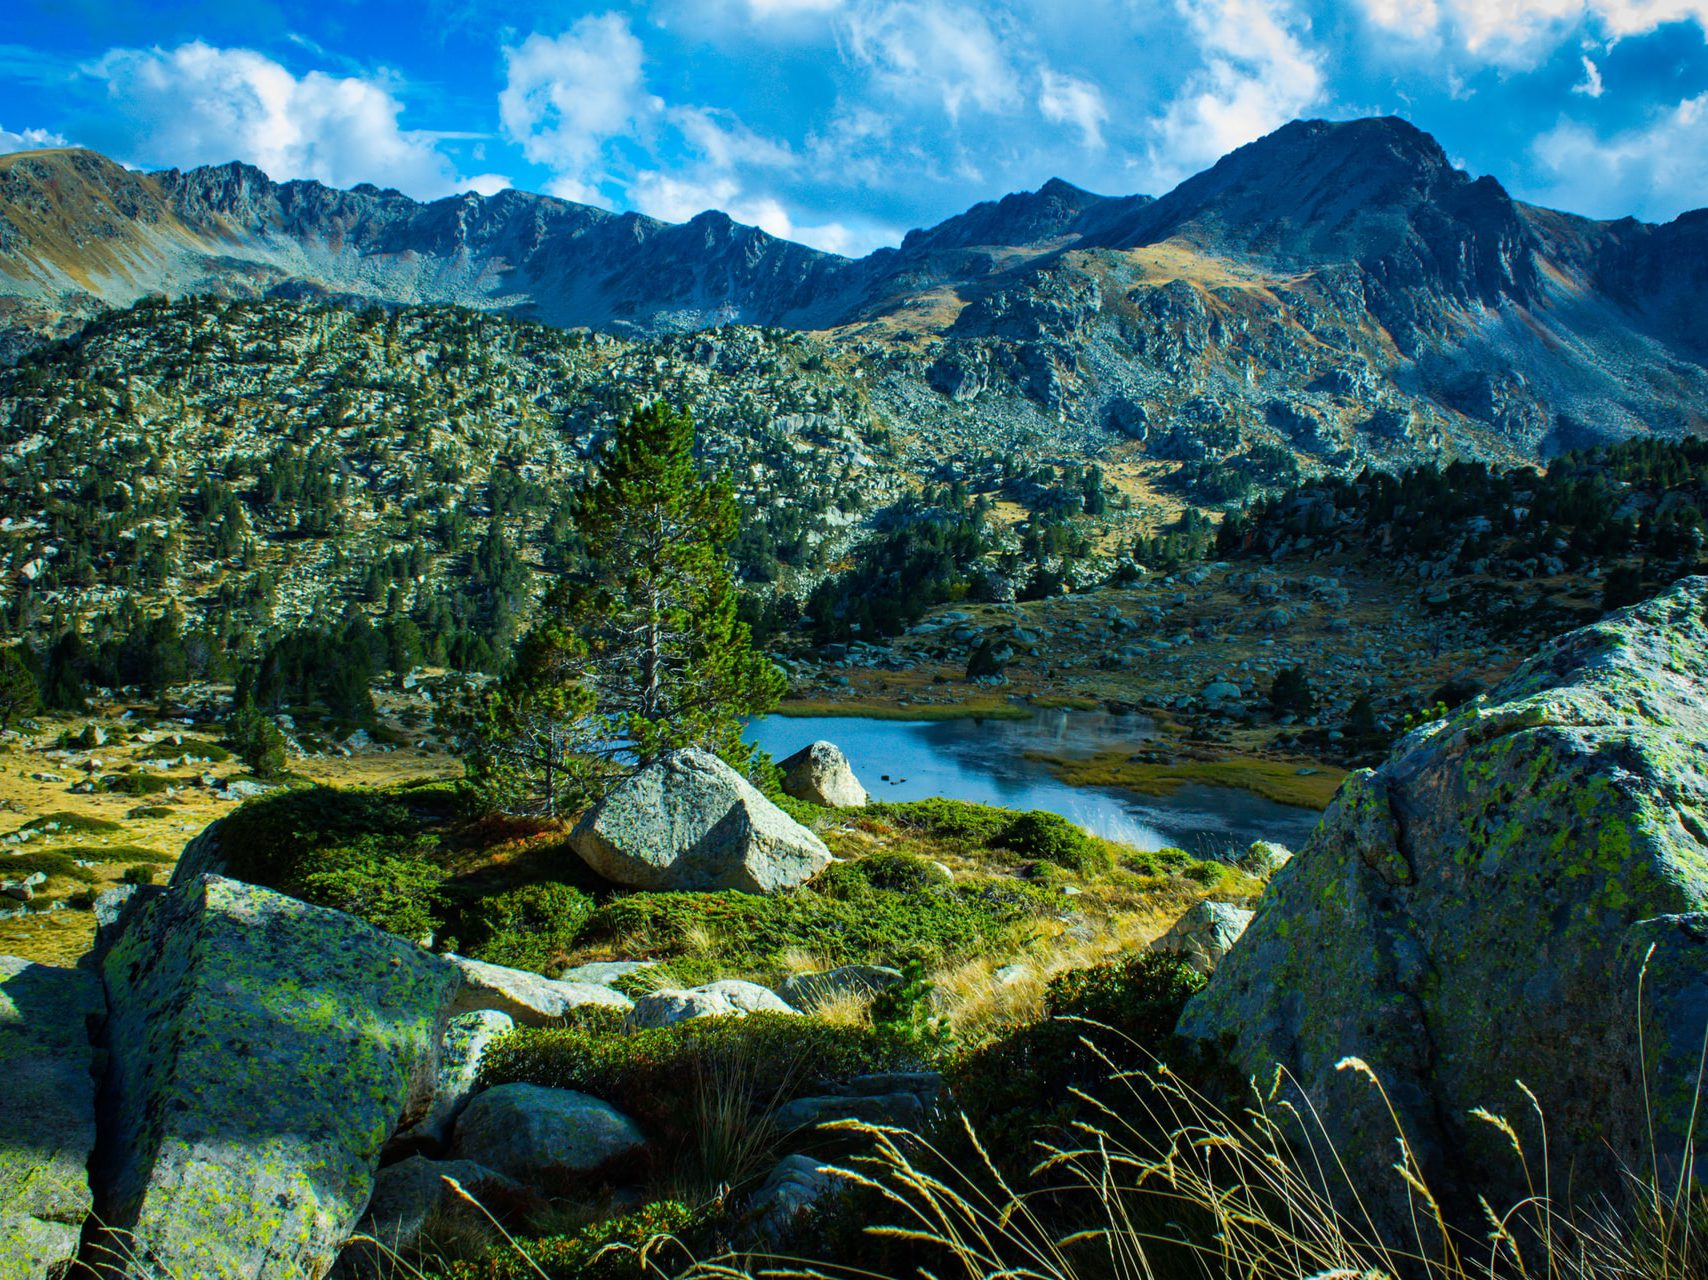 Natural beauty of Andorra - one of the smallest European countries